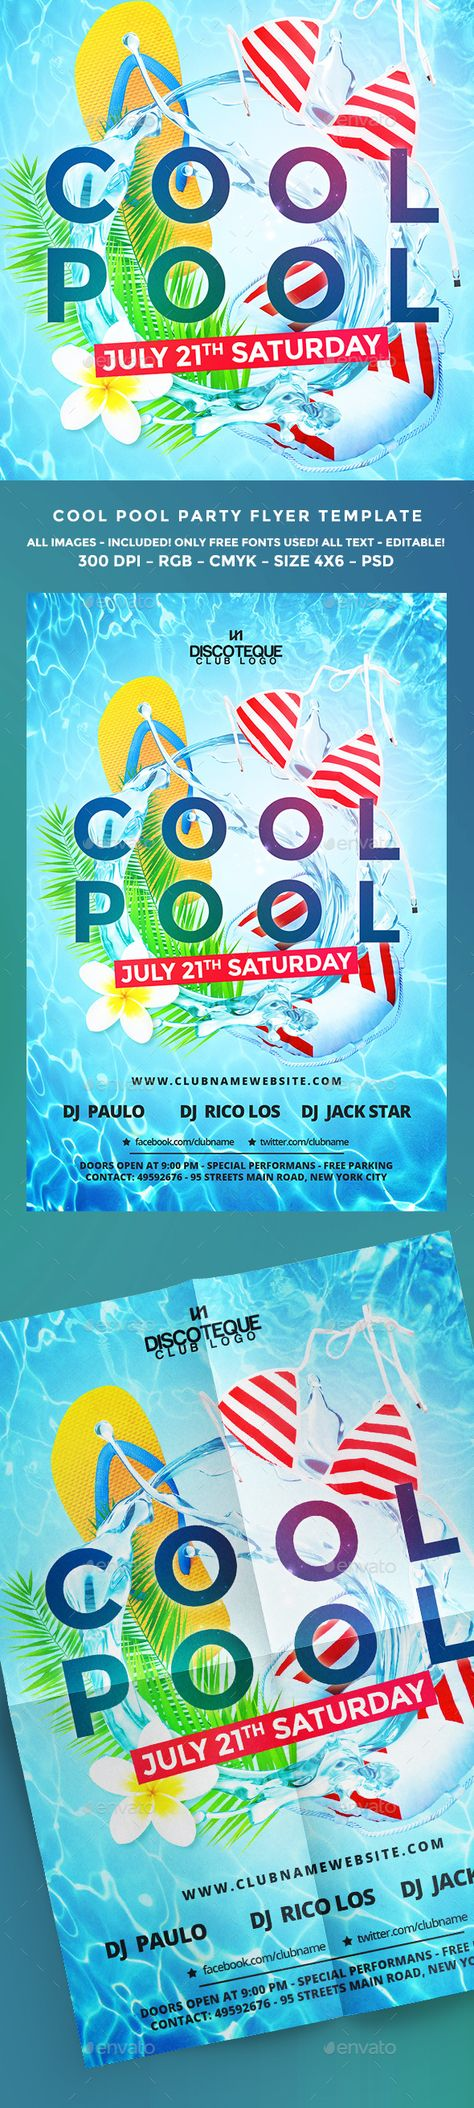 Pool Party Flyer By DesignWorkz On @creativemarket Flyers  51d1446013fef95fac8f5ac5020a5210 Psd Templates Flyer Template  155092780900517793